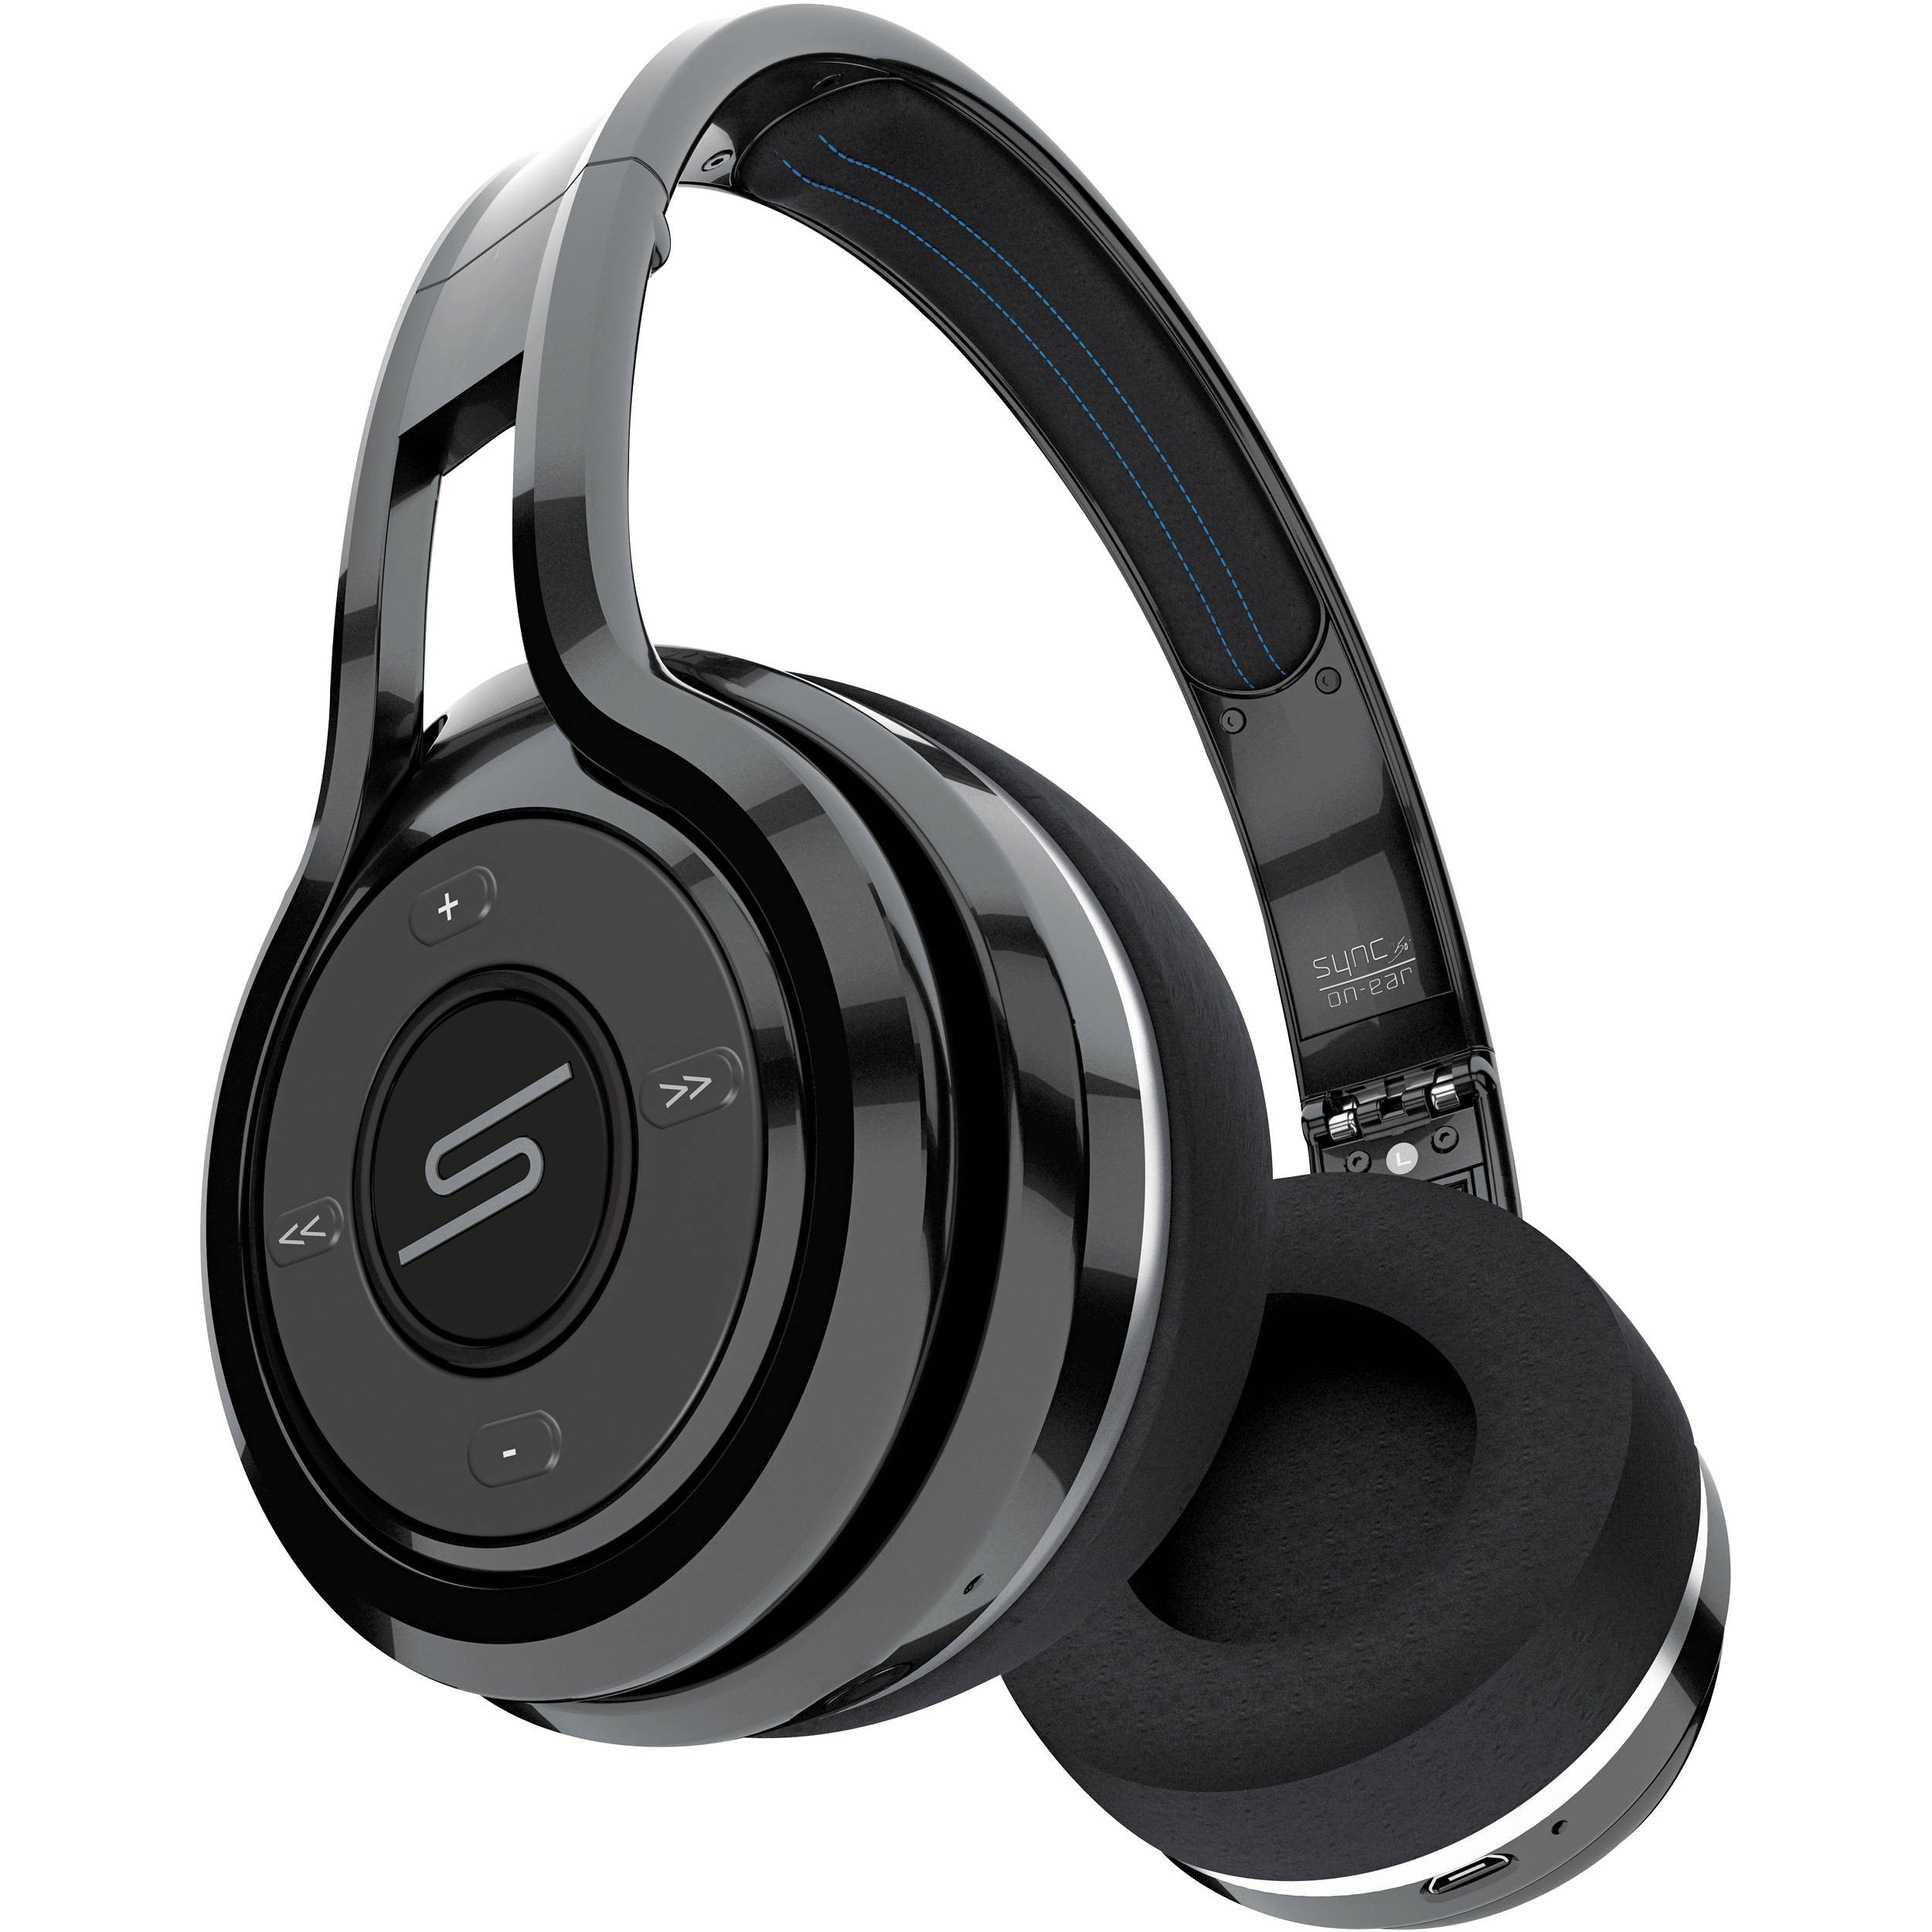 SMS Audio SYNC by 50 On-Ear Wireless Headphones - BaRRiL